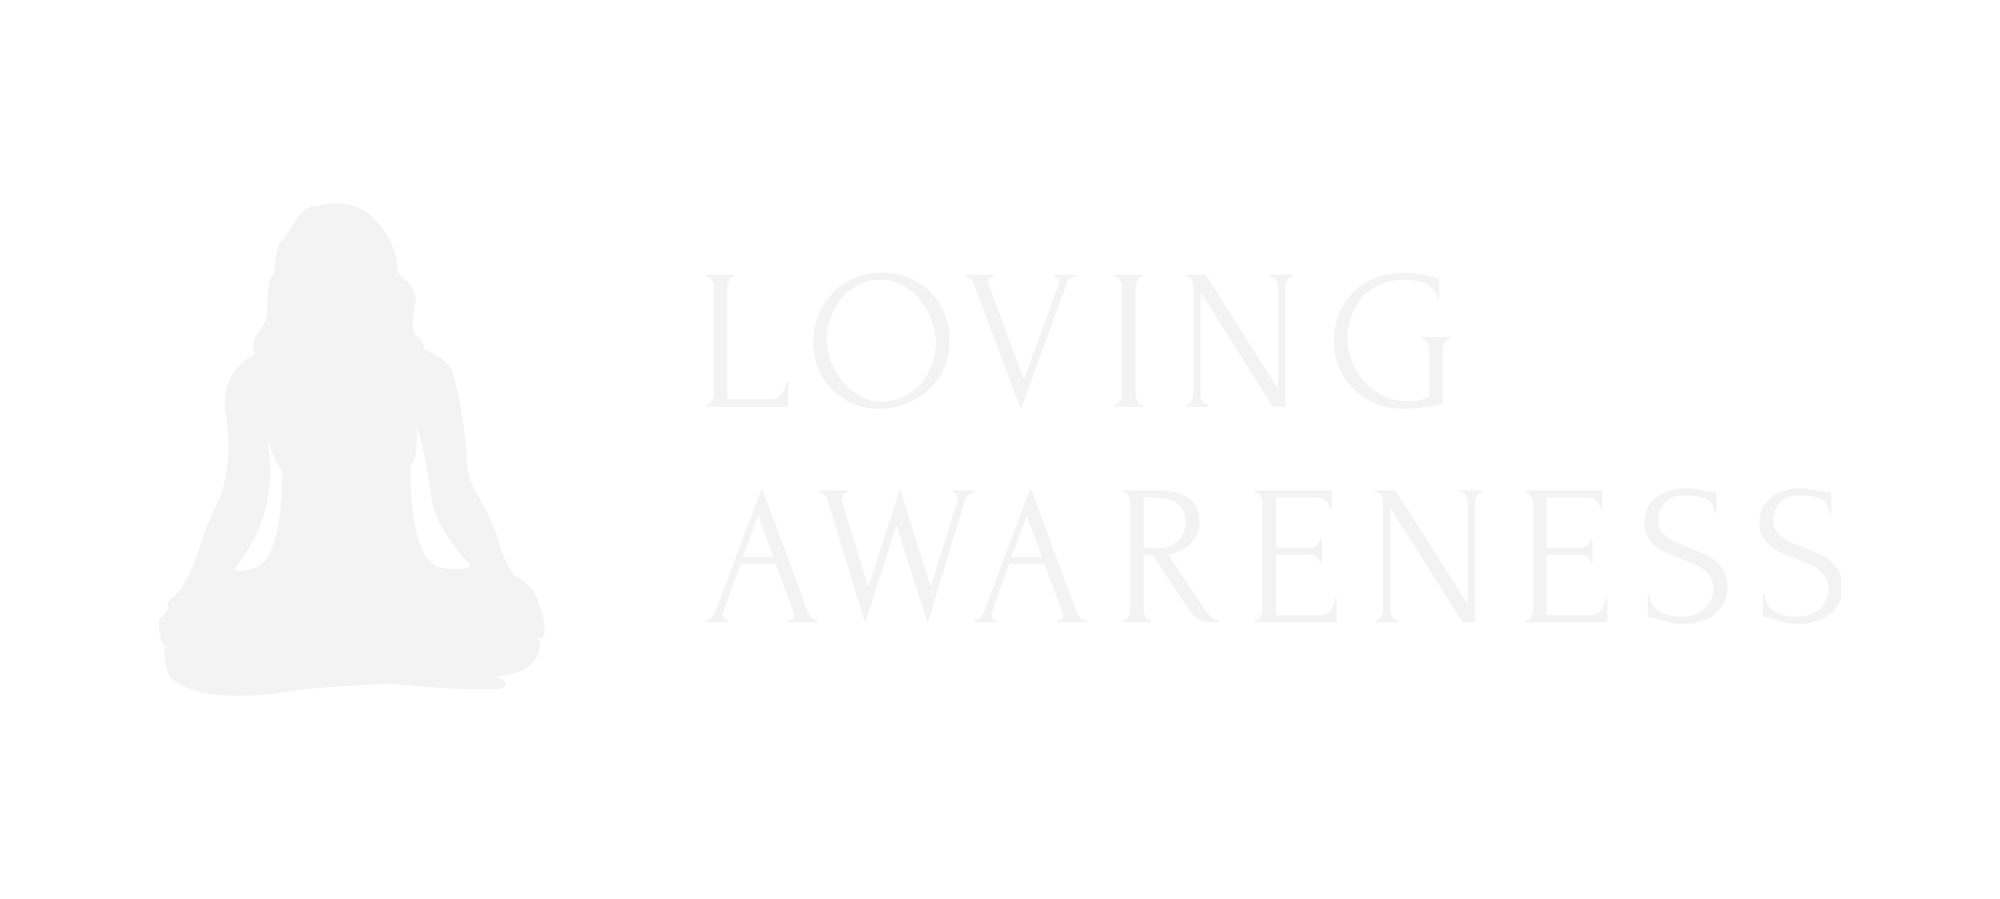 loving-awareness.com